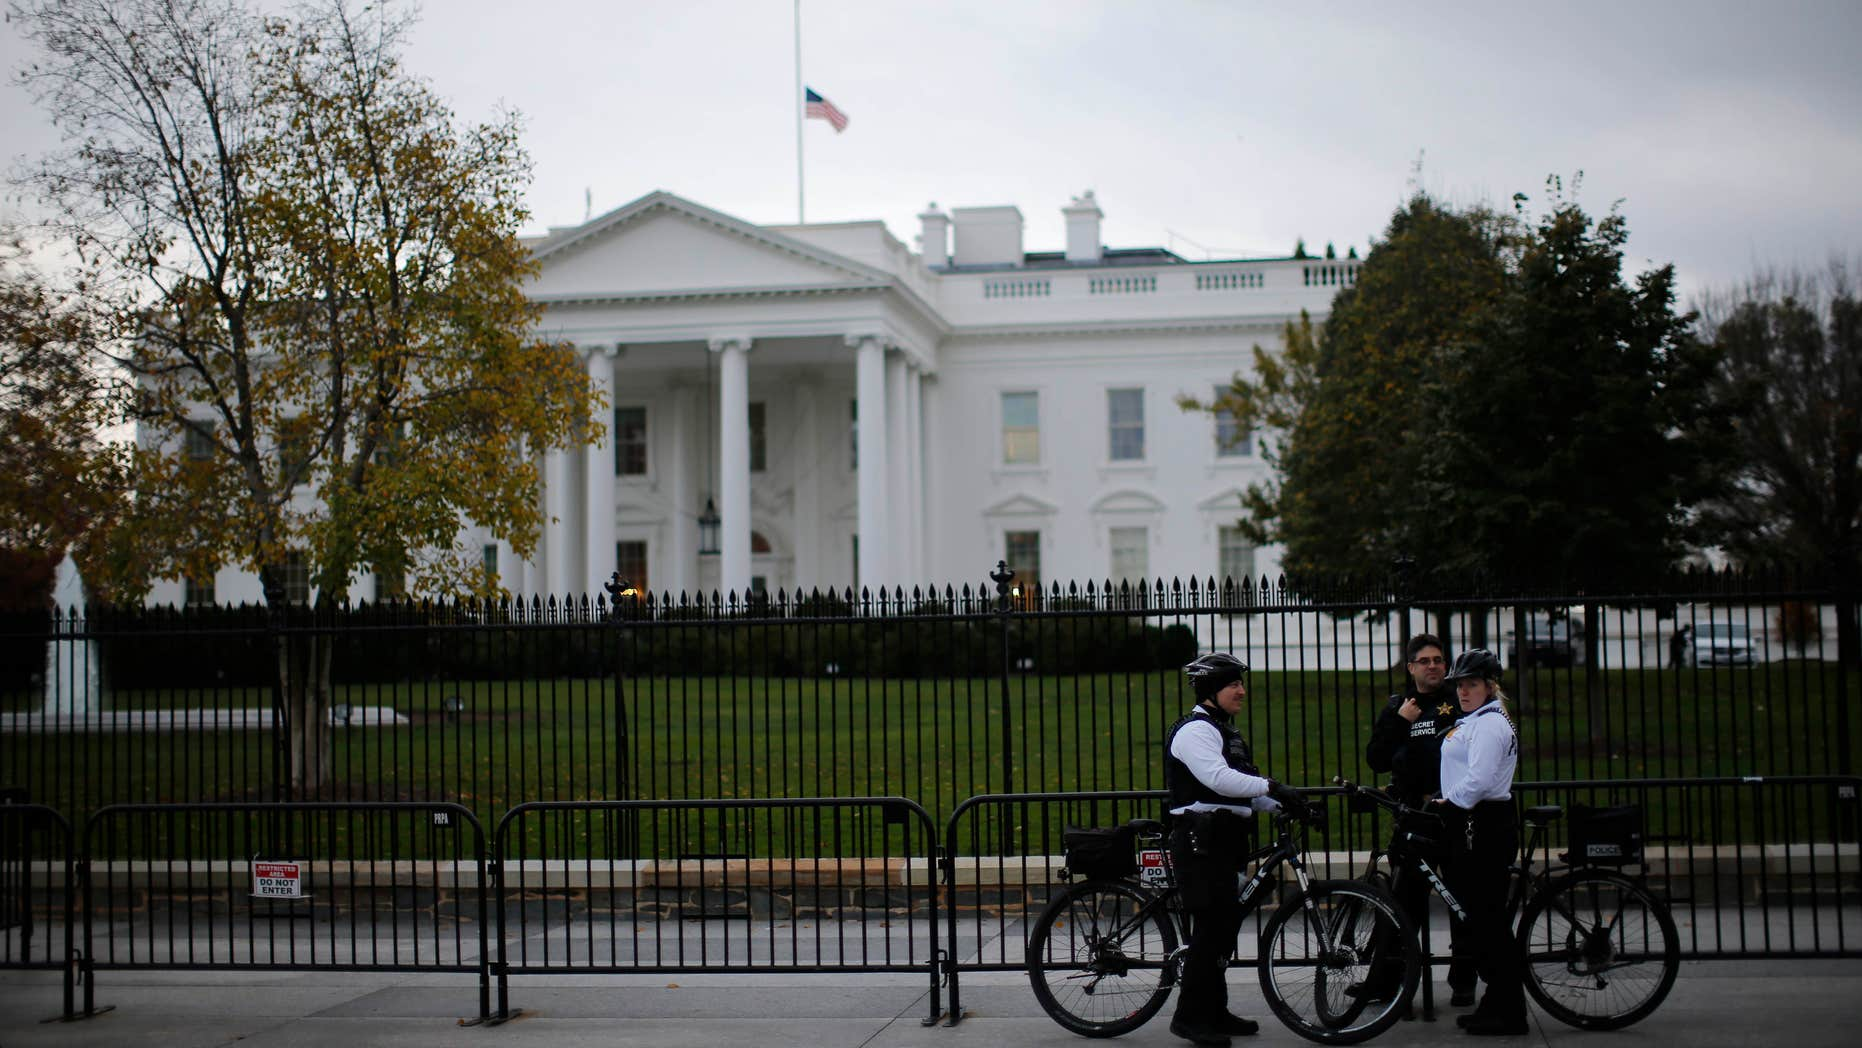 Nov. 17, 2015: Uniformed U.S. Secret Service officers keep watch outside the White House in Washington.